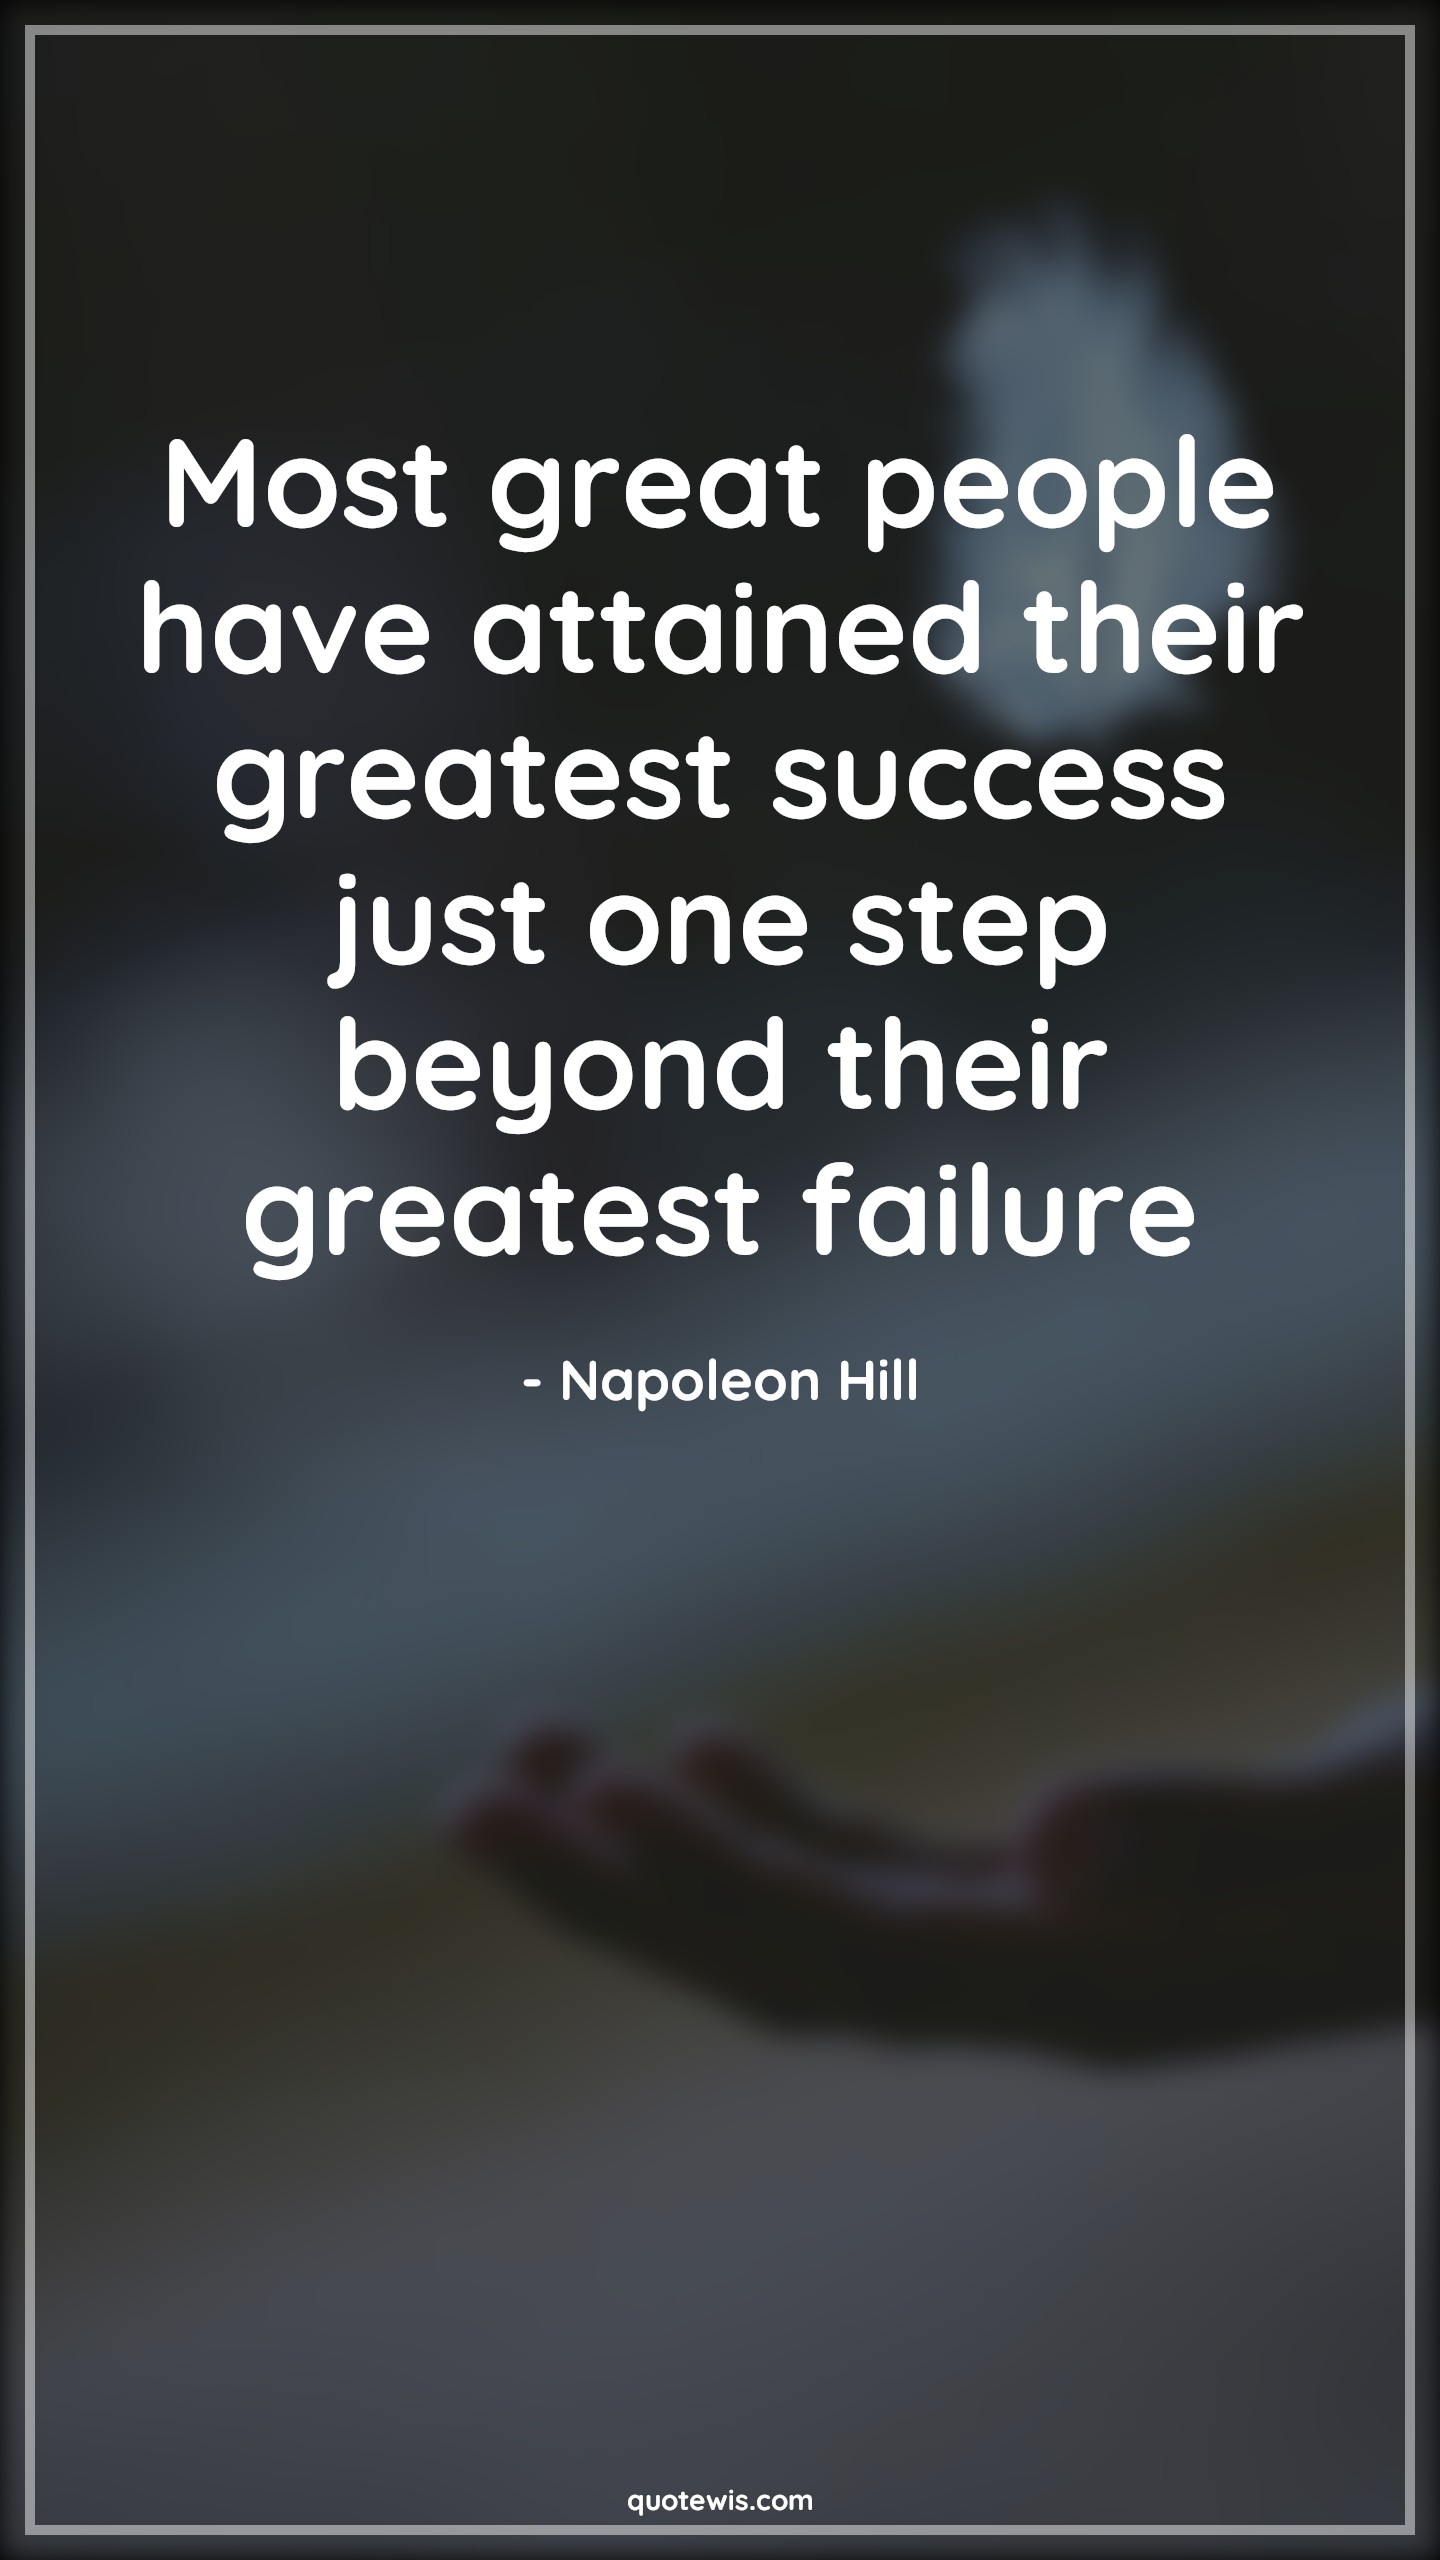 Most great people have attained their greatest success just one step beyond their greatest failure